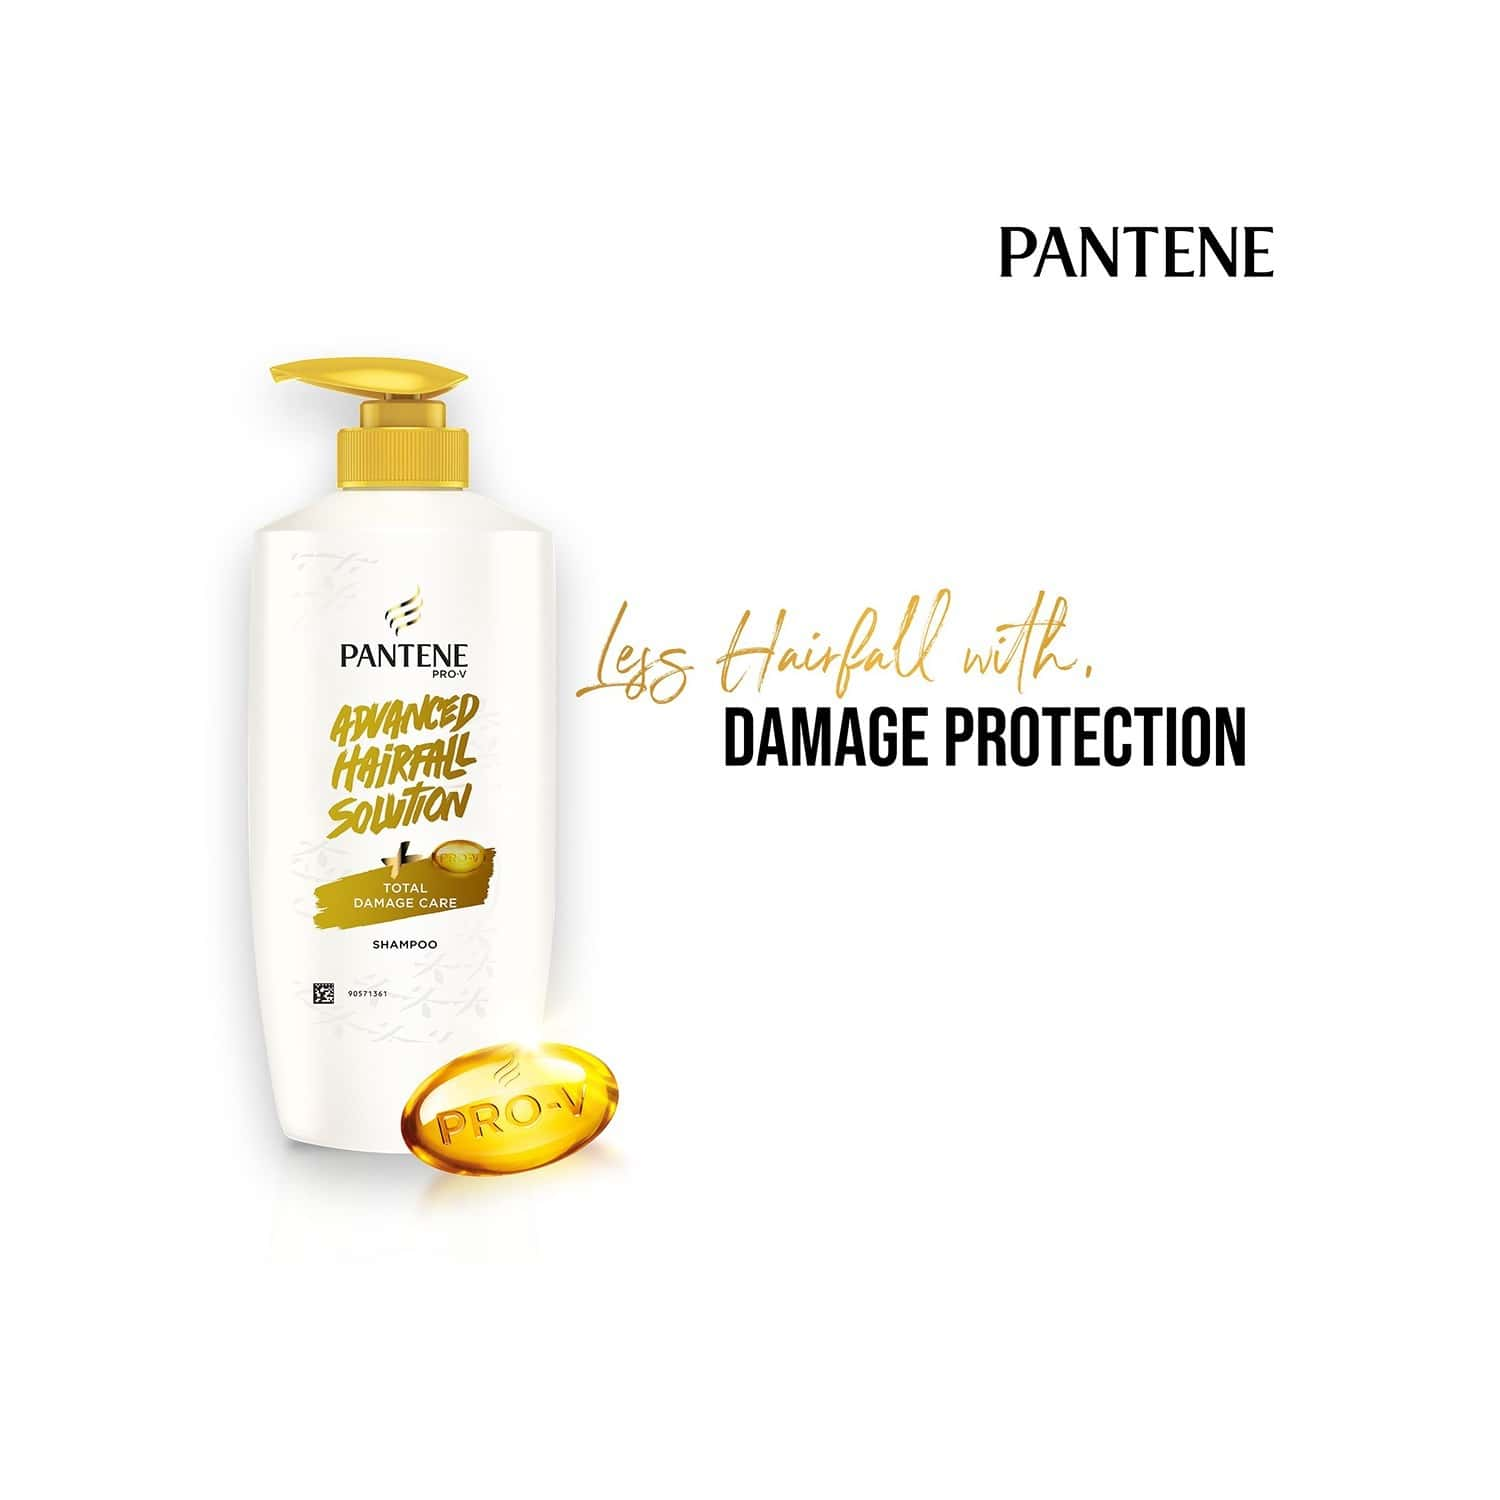 Pantene Advanced Hair Fall Solution Total Damage Care Shampoo - 650ml